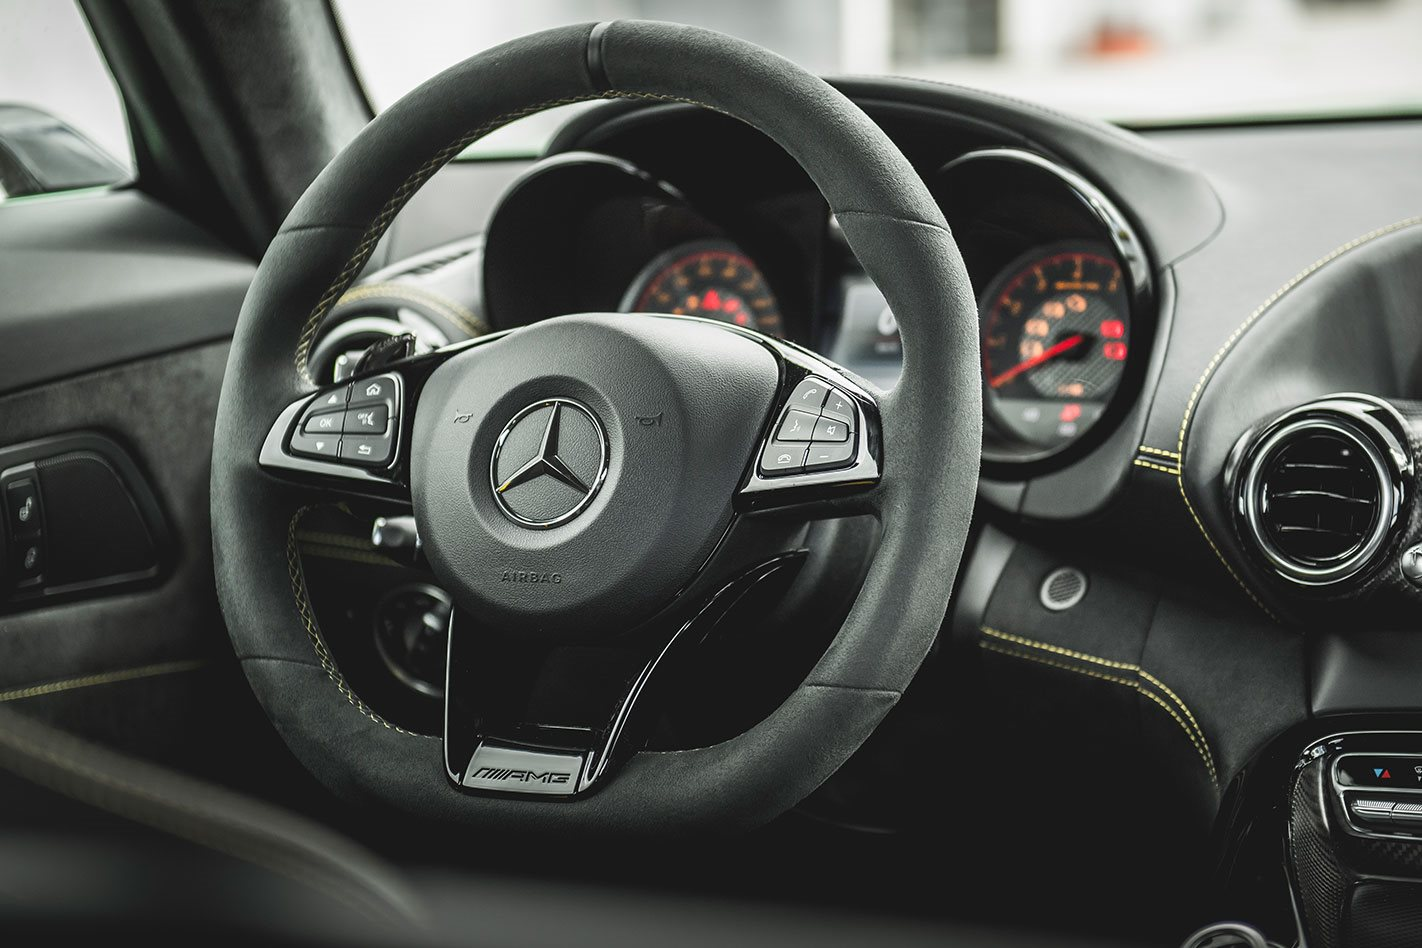 Mercedes AMG GT R steering wheel